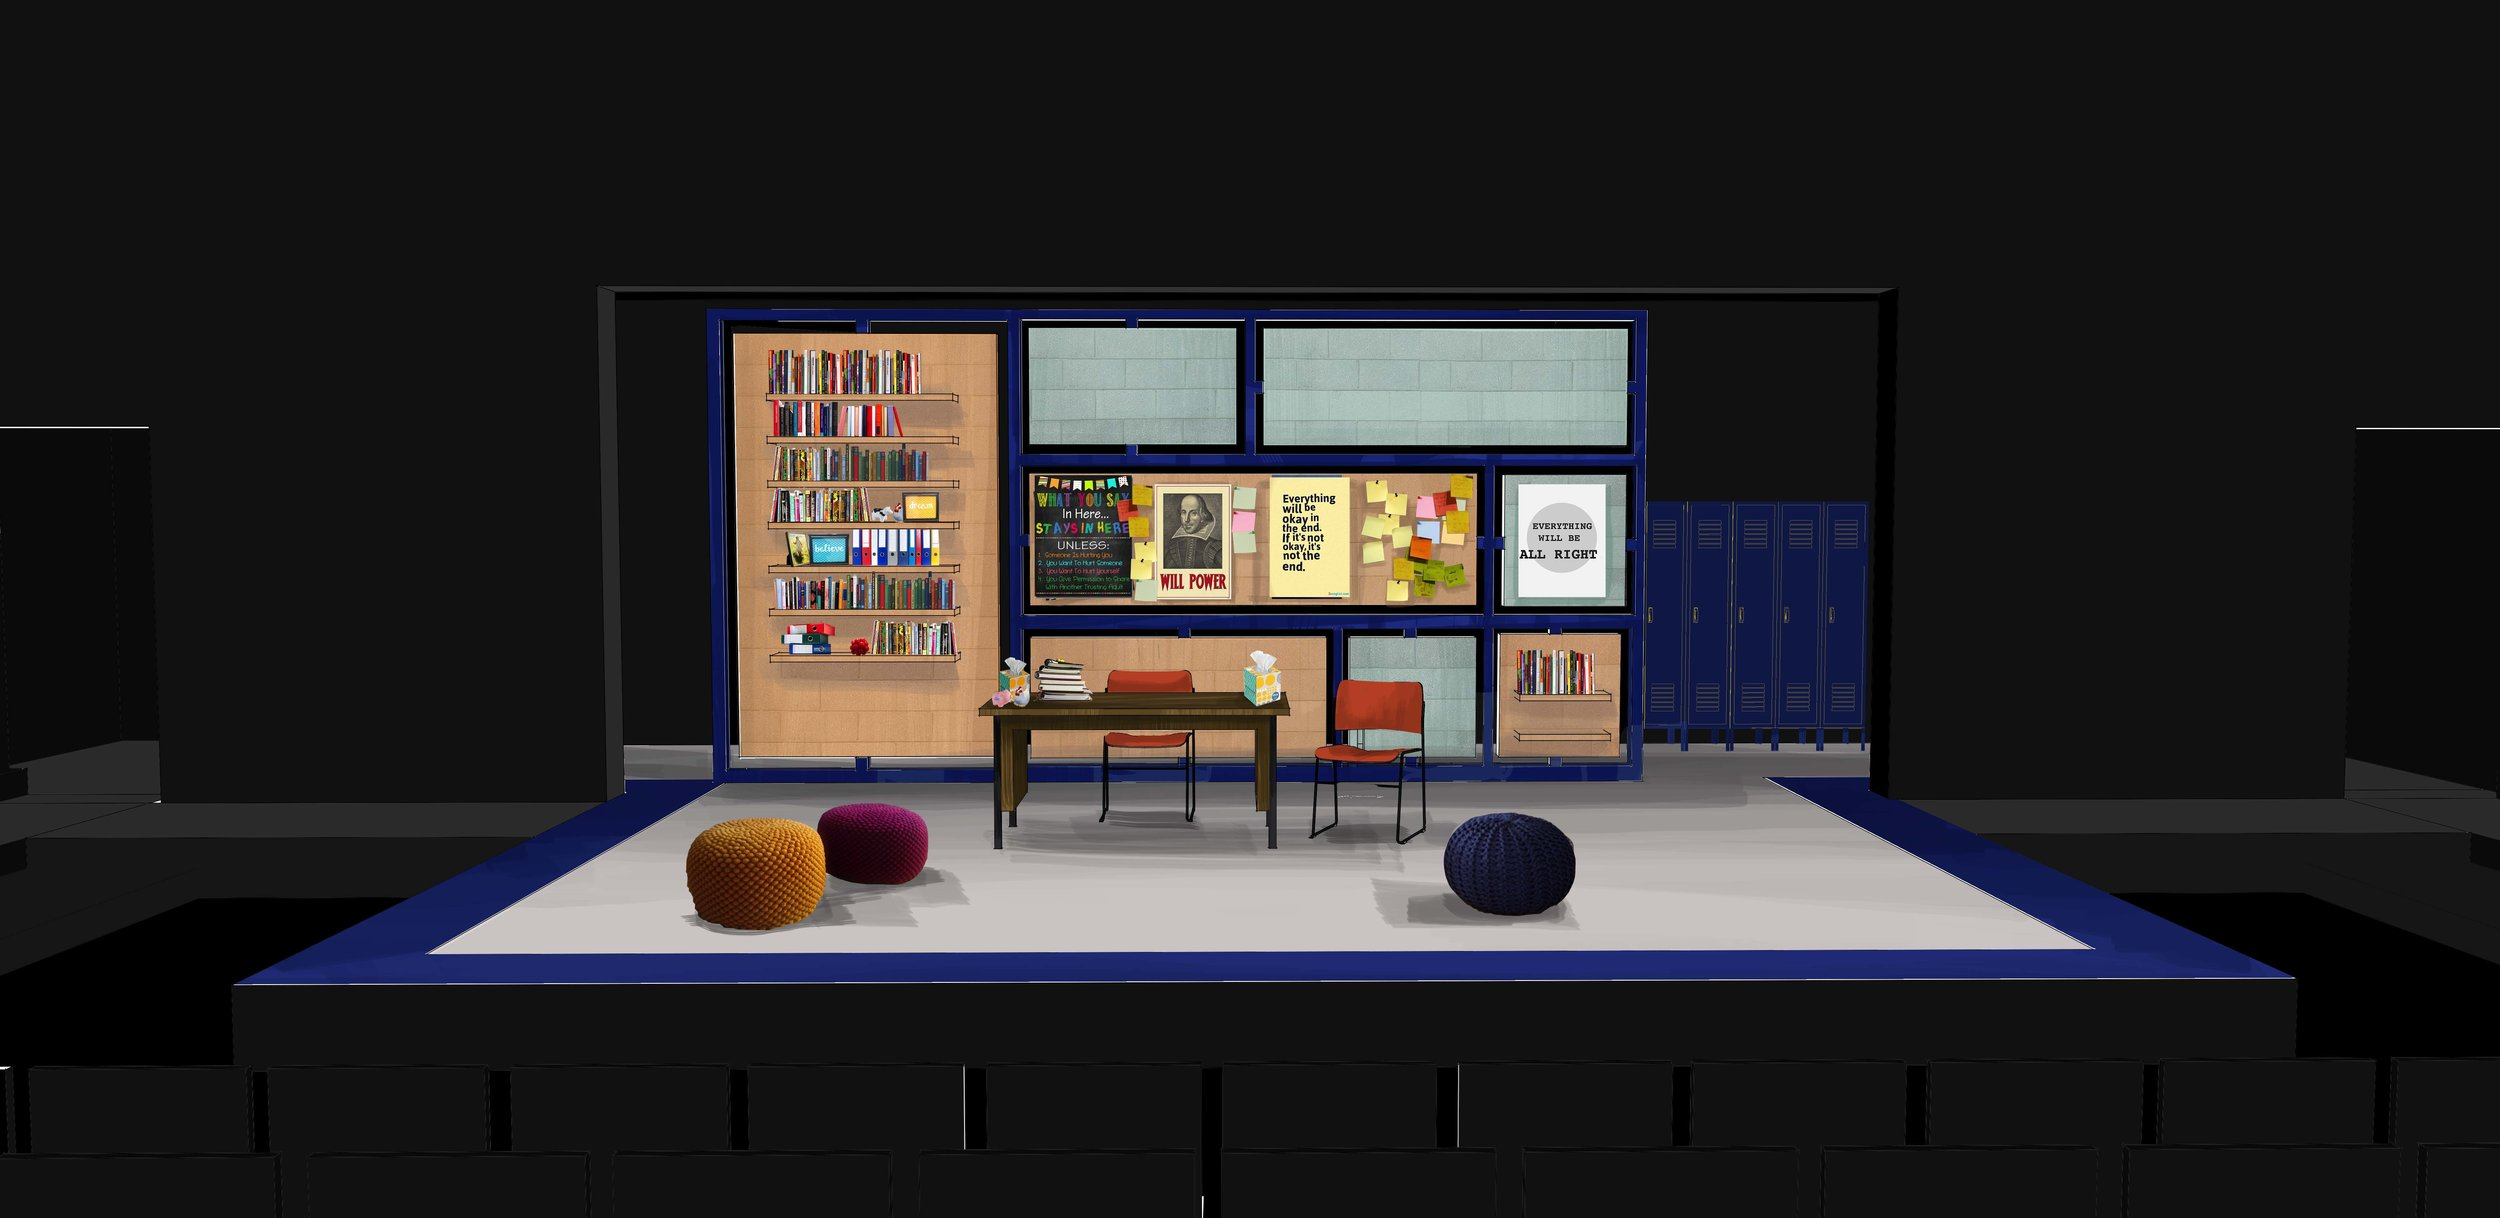 Theatre rendering for 'The Dream of the Burning Boy' by David West Read - counselor's office